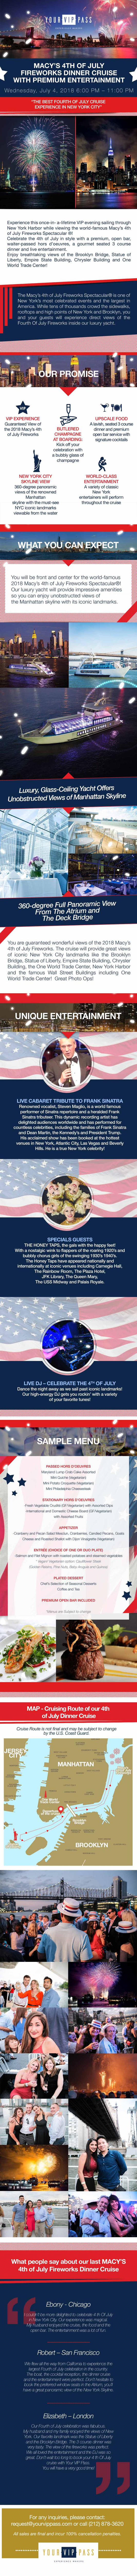 Your VIP Pass - Macy's 4th Of July Fireworks Dinner Cruise With Premium Entertainment